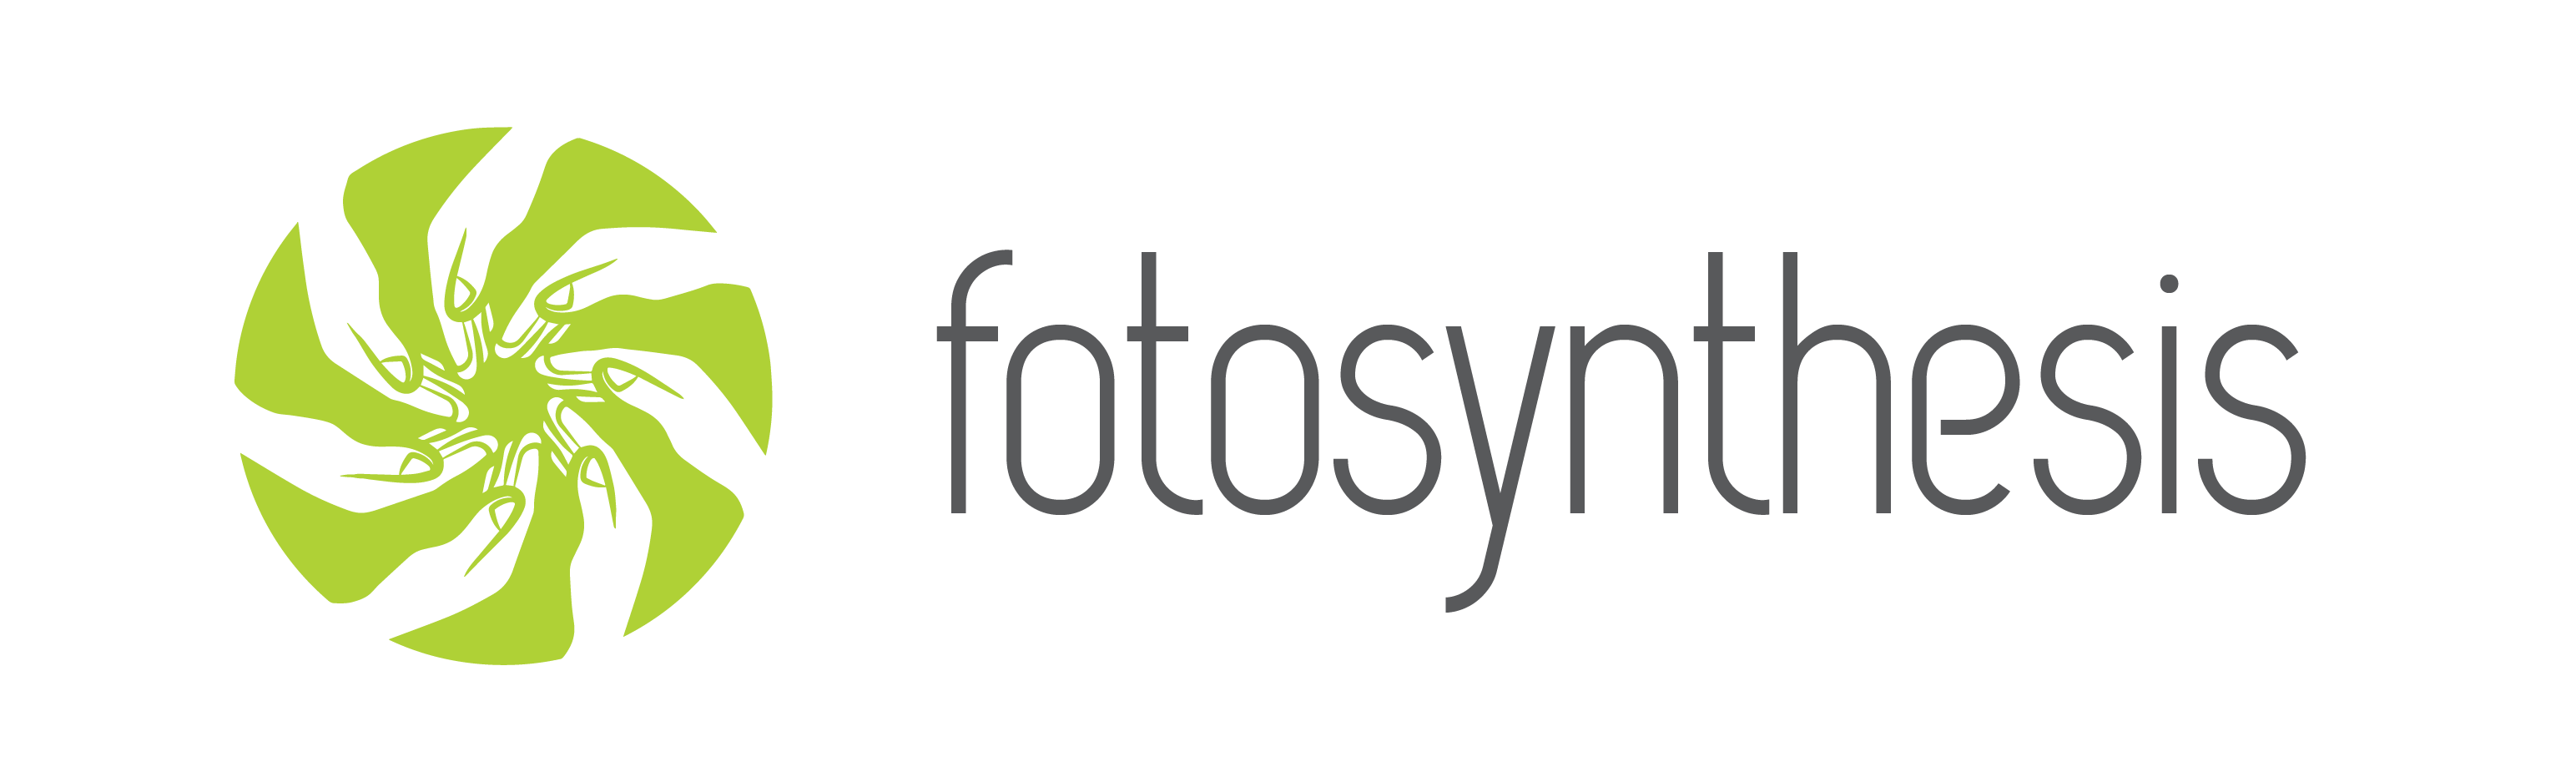 Fotosynthesis